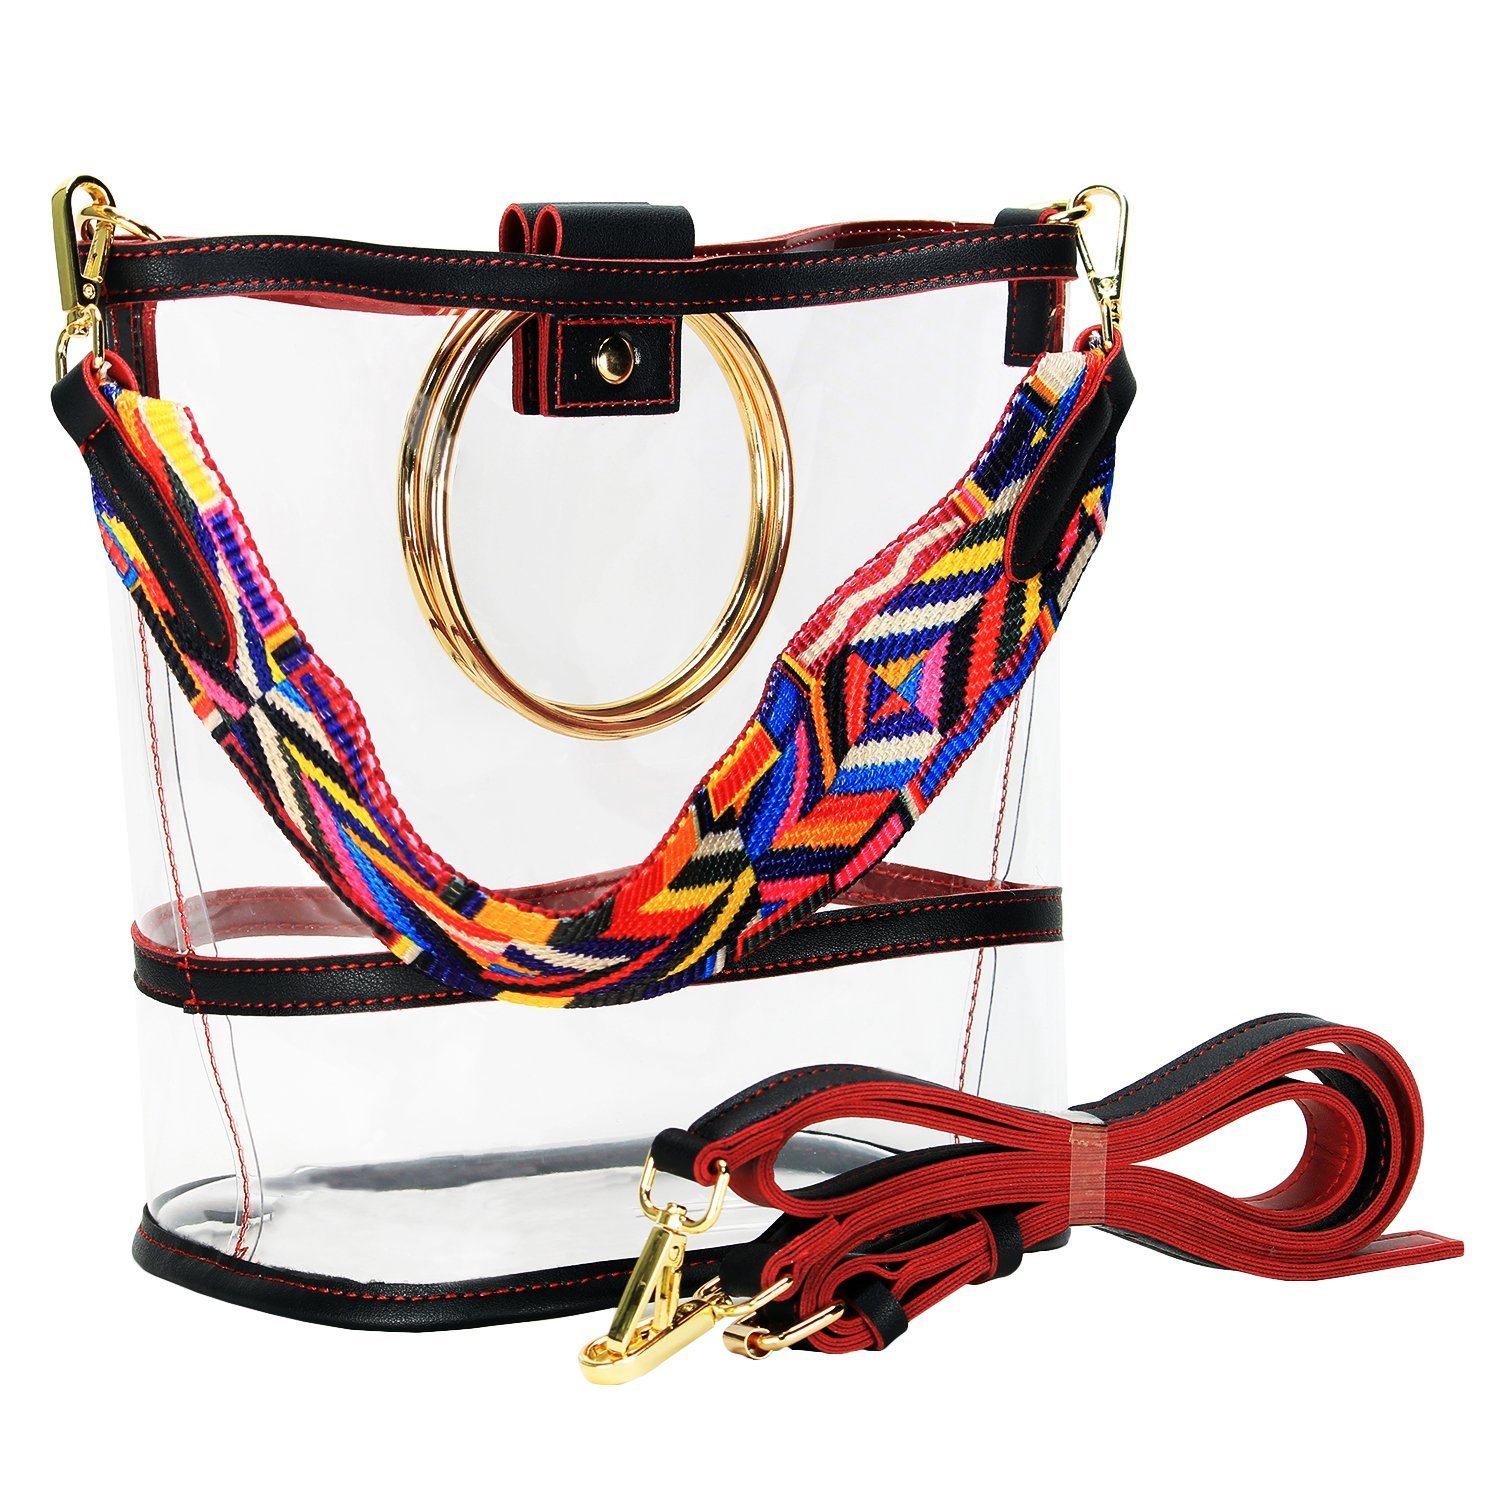 d3f781f3e13 SharPlus Clear PVC Crossbody Shoulder Purse Bag - Sporting Events Stadium  Approved Transparent Plastic Tote Bucket Handbag with Colorful Strap